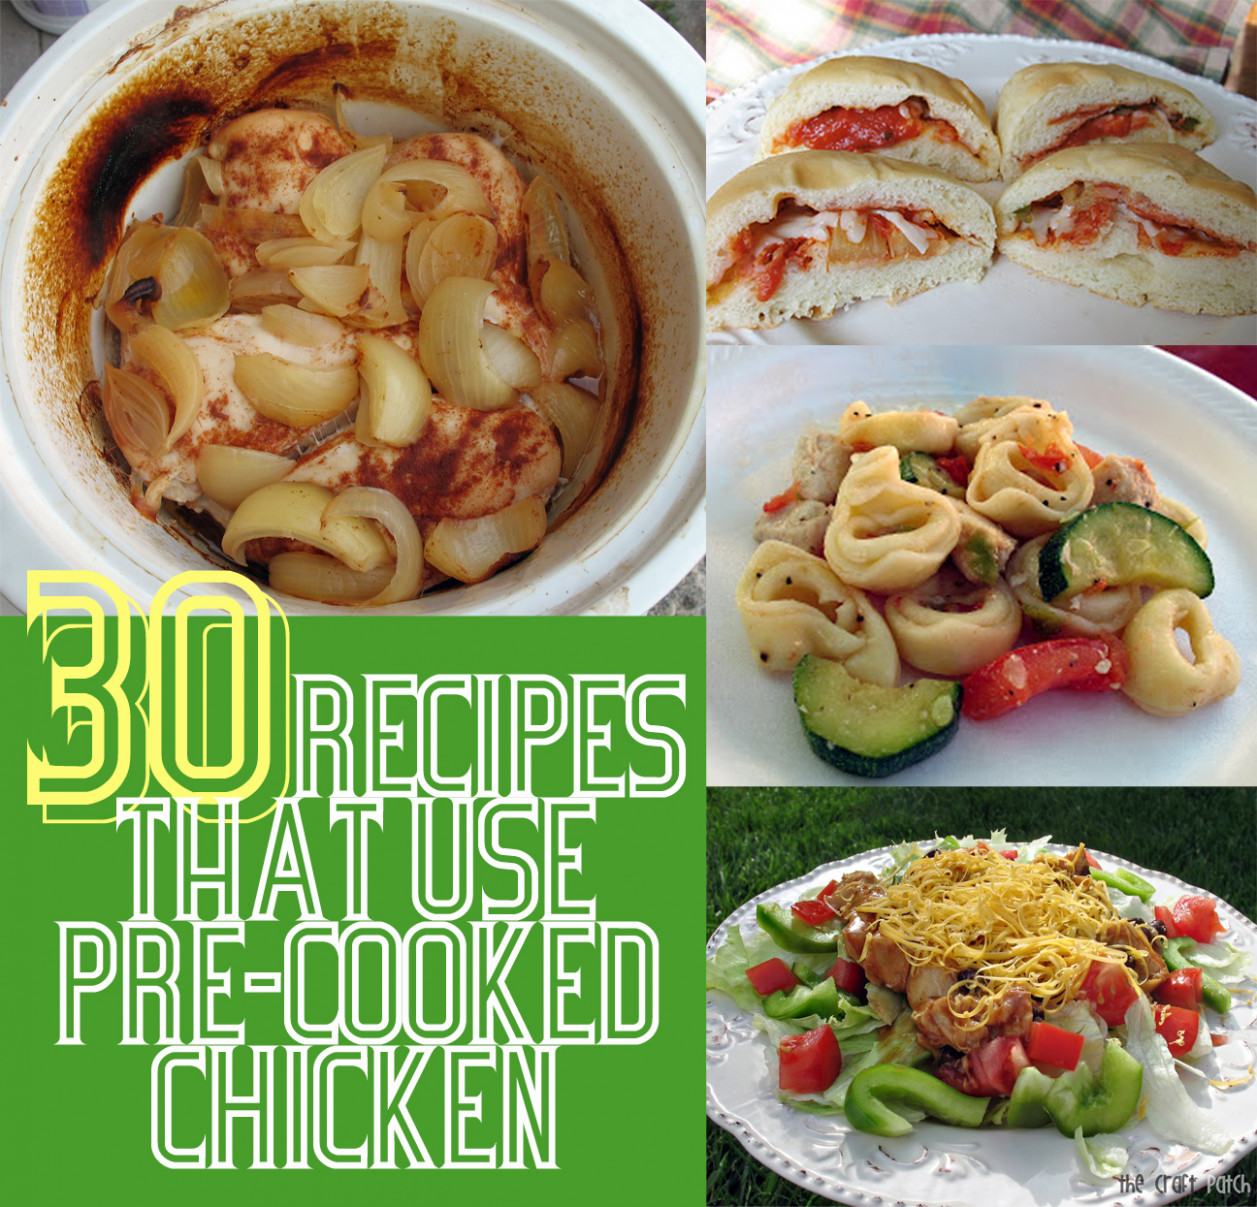 15 Leftover Chicken Recipes - The Craft Patch - chicken recipes using cooked chicken